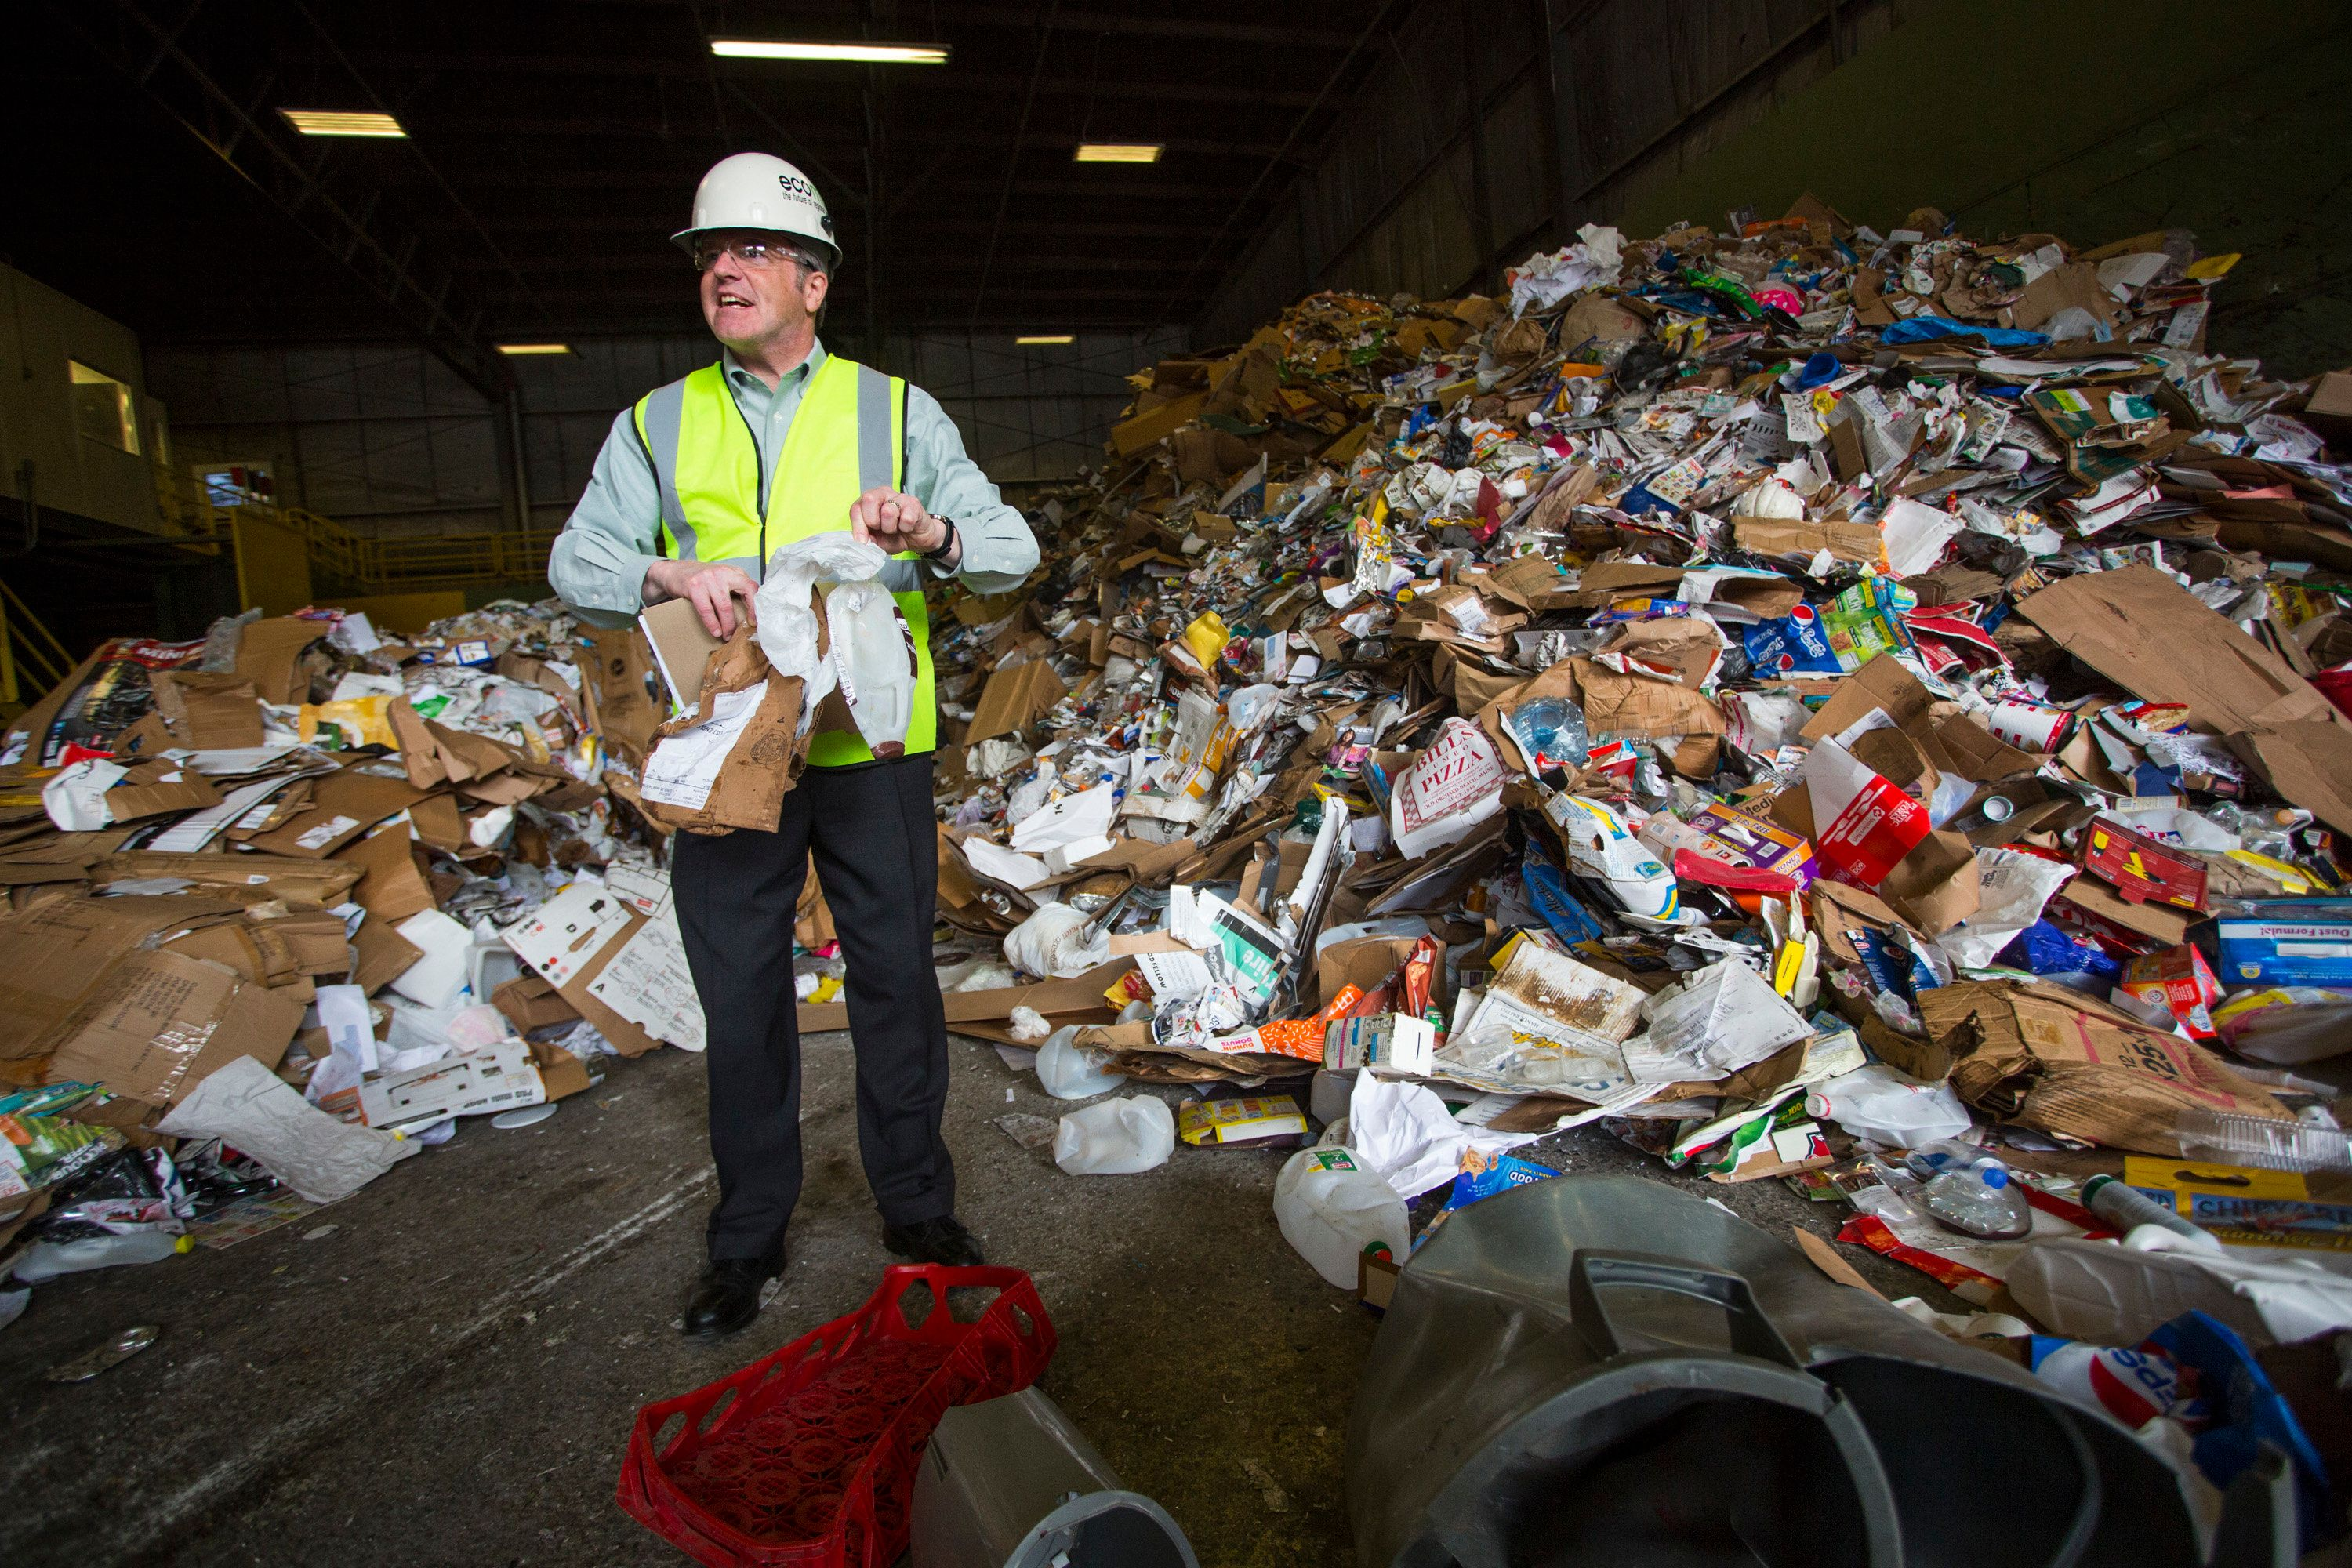 PORTLAND, ME - MAY 3: Ecomaine implements new policies to eliminate contaminated recycling from the waste stream and try to reduce its losses in the global recycled commodity market. Ecomaine CEO Kevin Roche picks through unsorted materials after it was delivered to the facility in Portland on Thursday, May 3, 2018. (Photo by Derek Davis/Portland Press Herald via Getty Images)